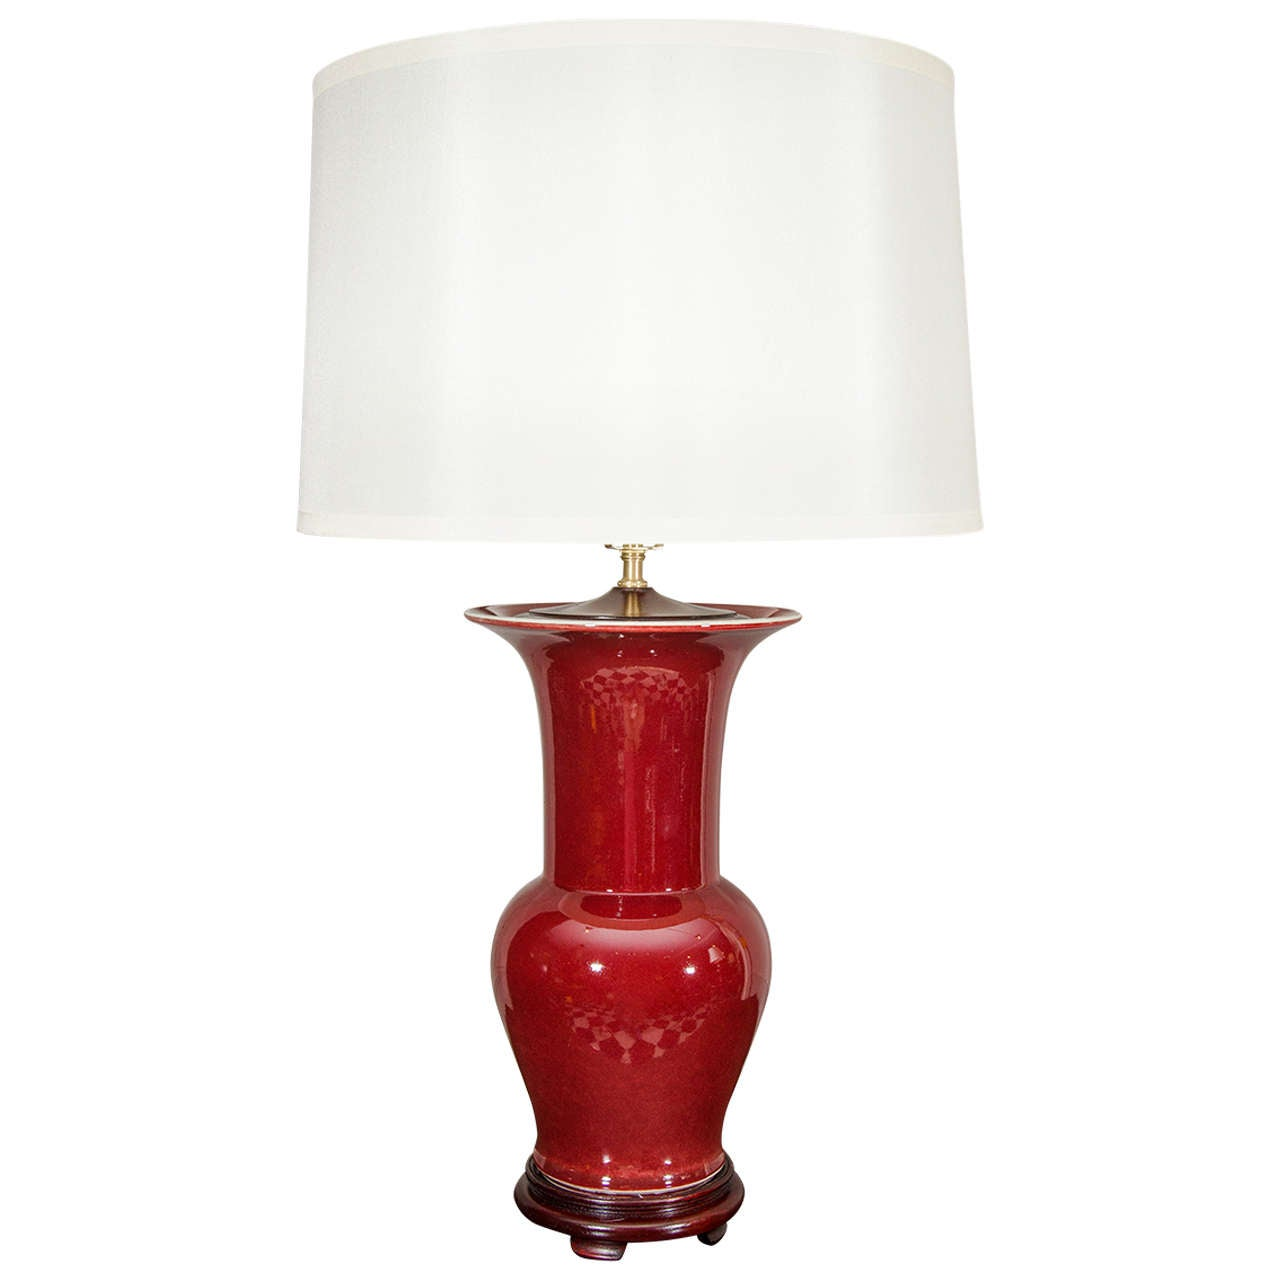 Single Chinese Langyao Hong Oxblood Red Porcelain Fishtail Vase, Wired as a Lamp